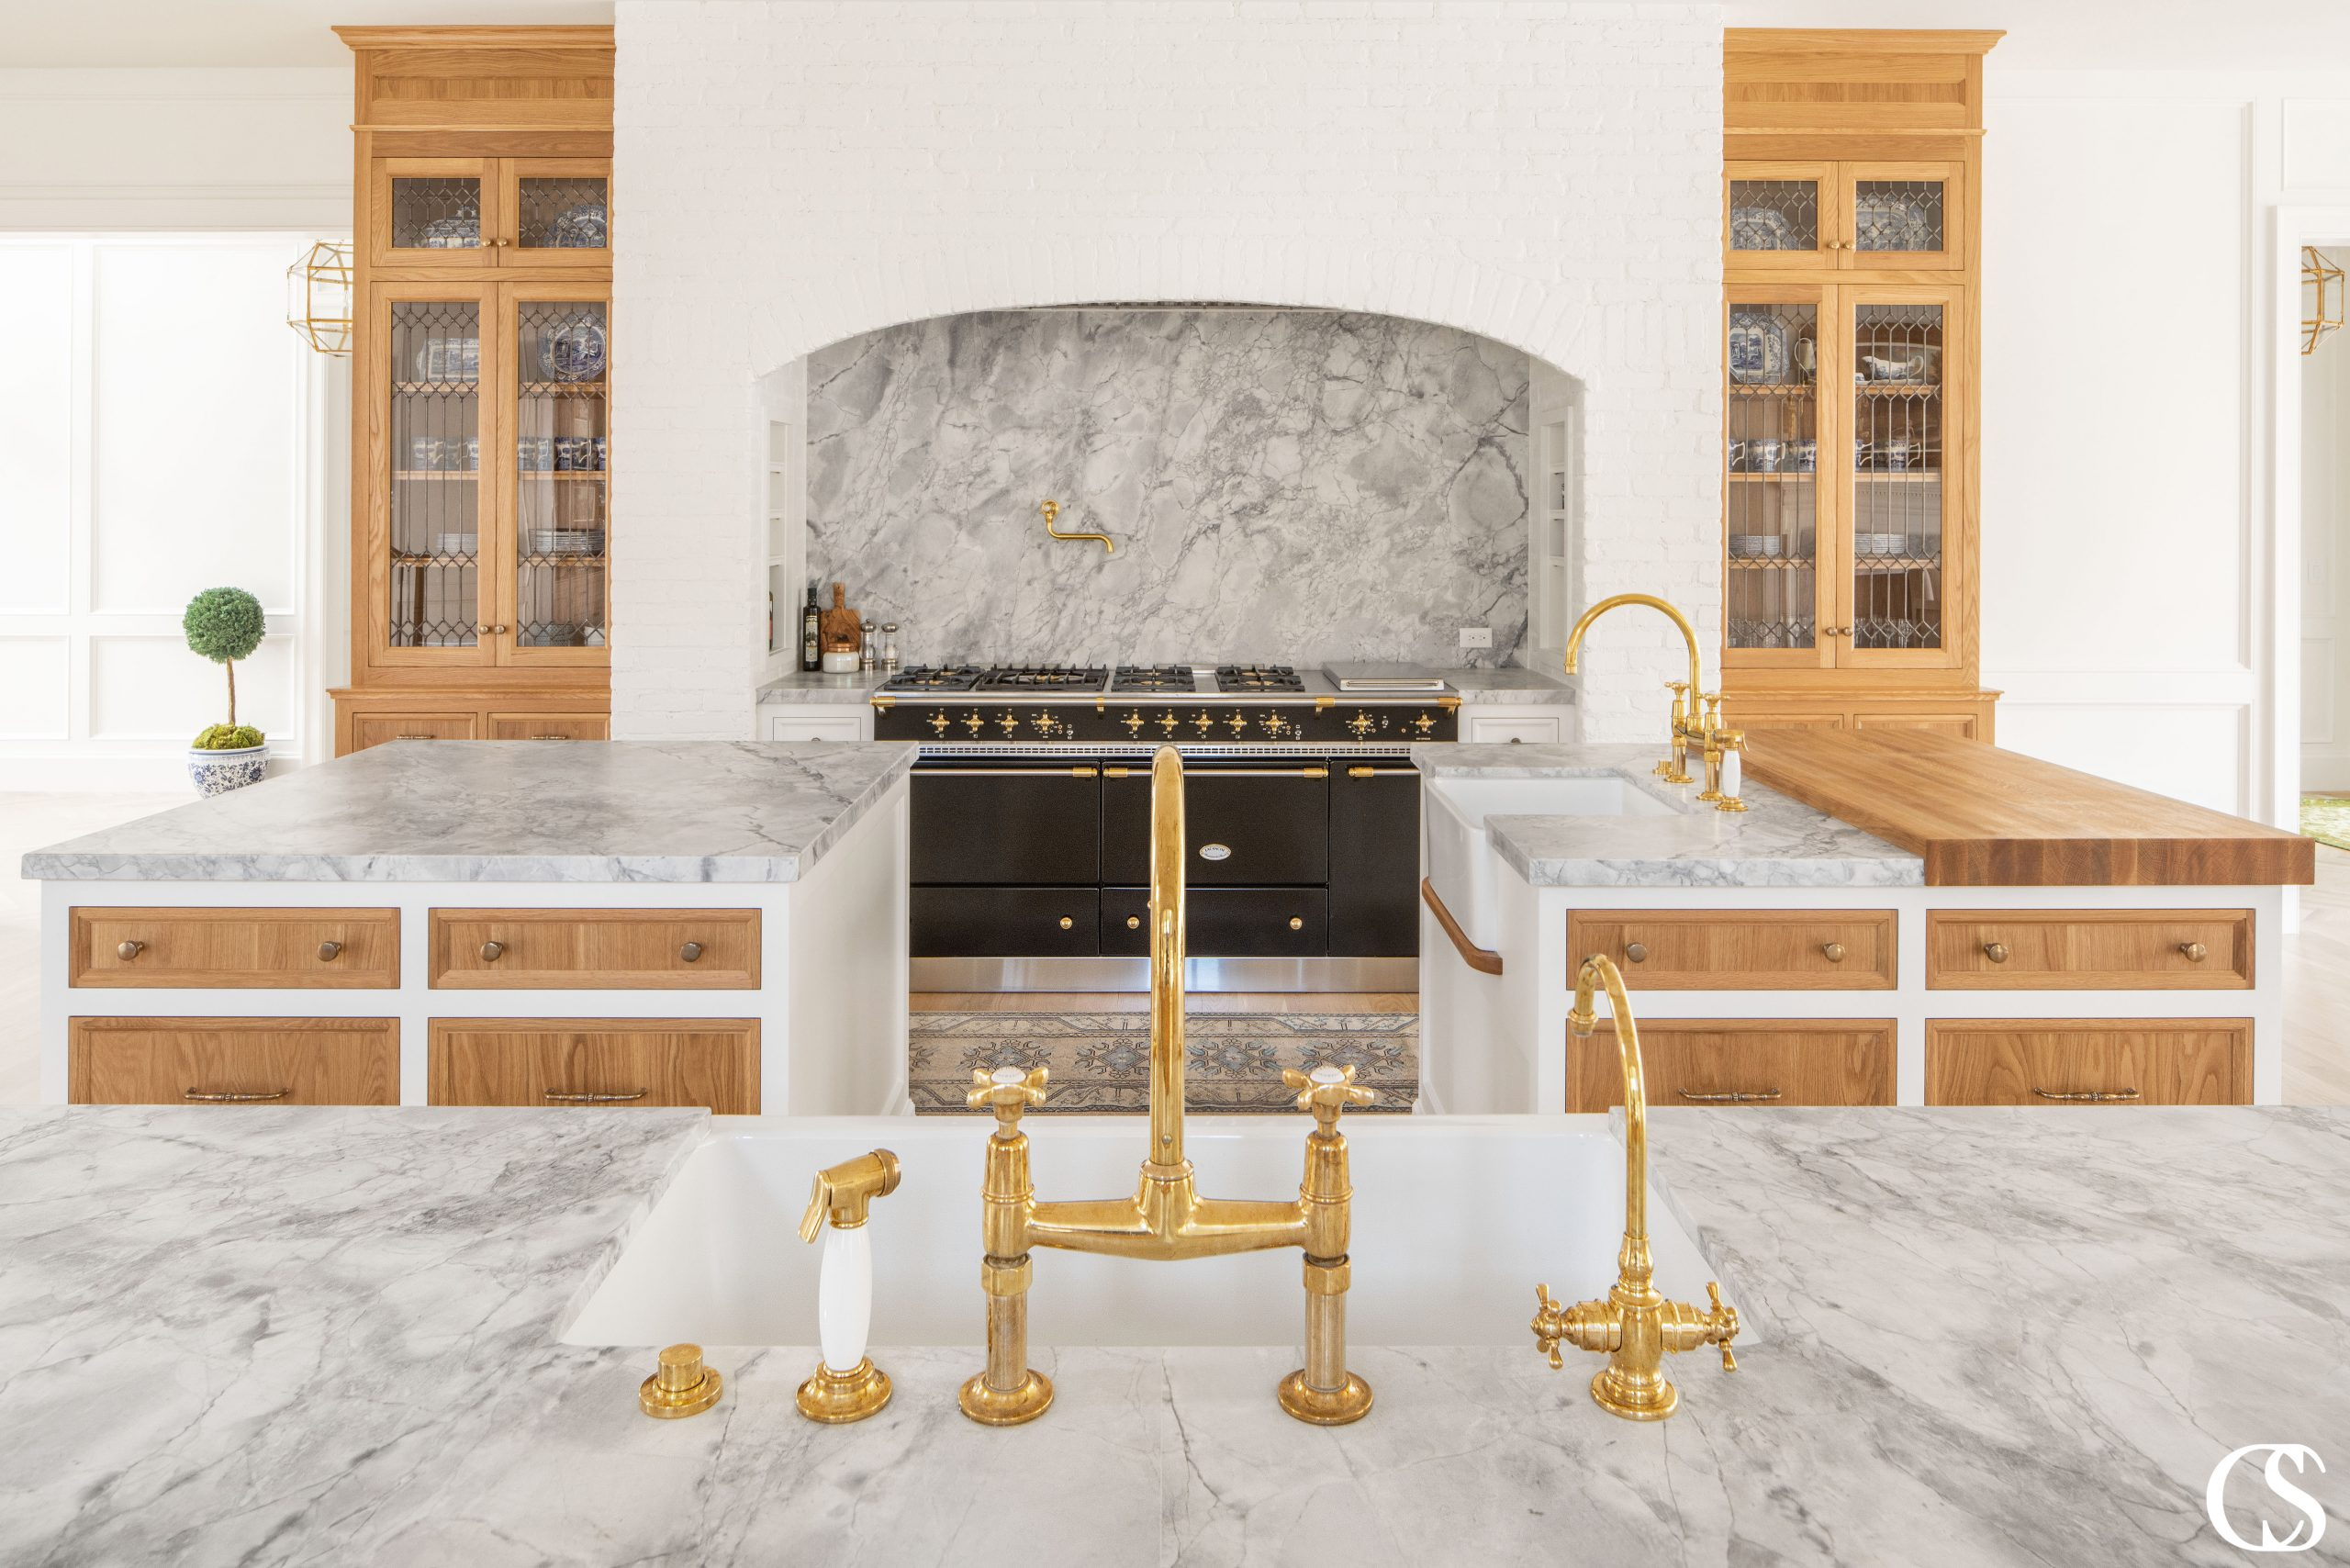 Custom kitchen cabinet design could mean three uniquely designed kitchen islands, all of which can perform a different function for your space.